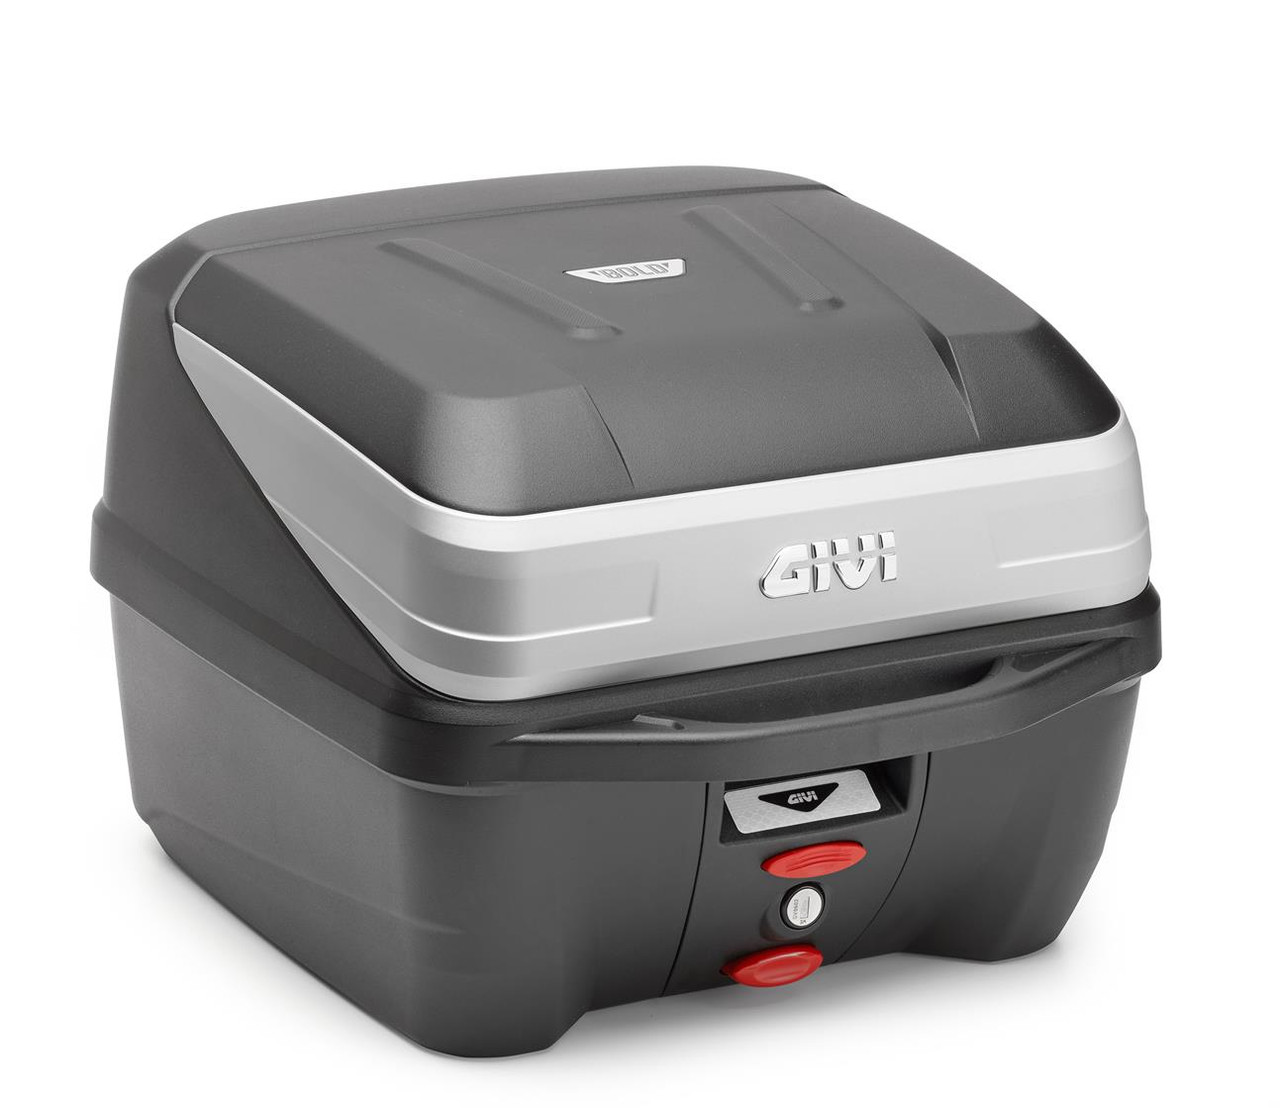 B32 GIVI Monolock Top Box Bold, (commuter) cases, 32LT, Black, B32NMAL SOLD OUT